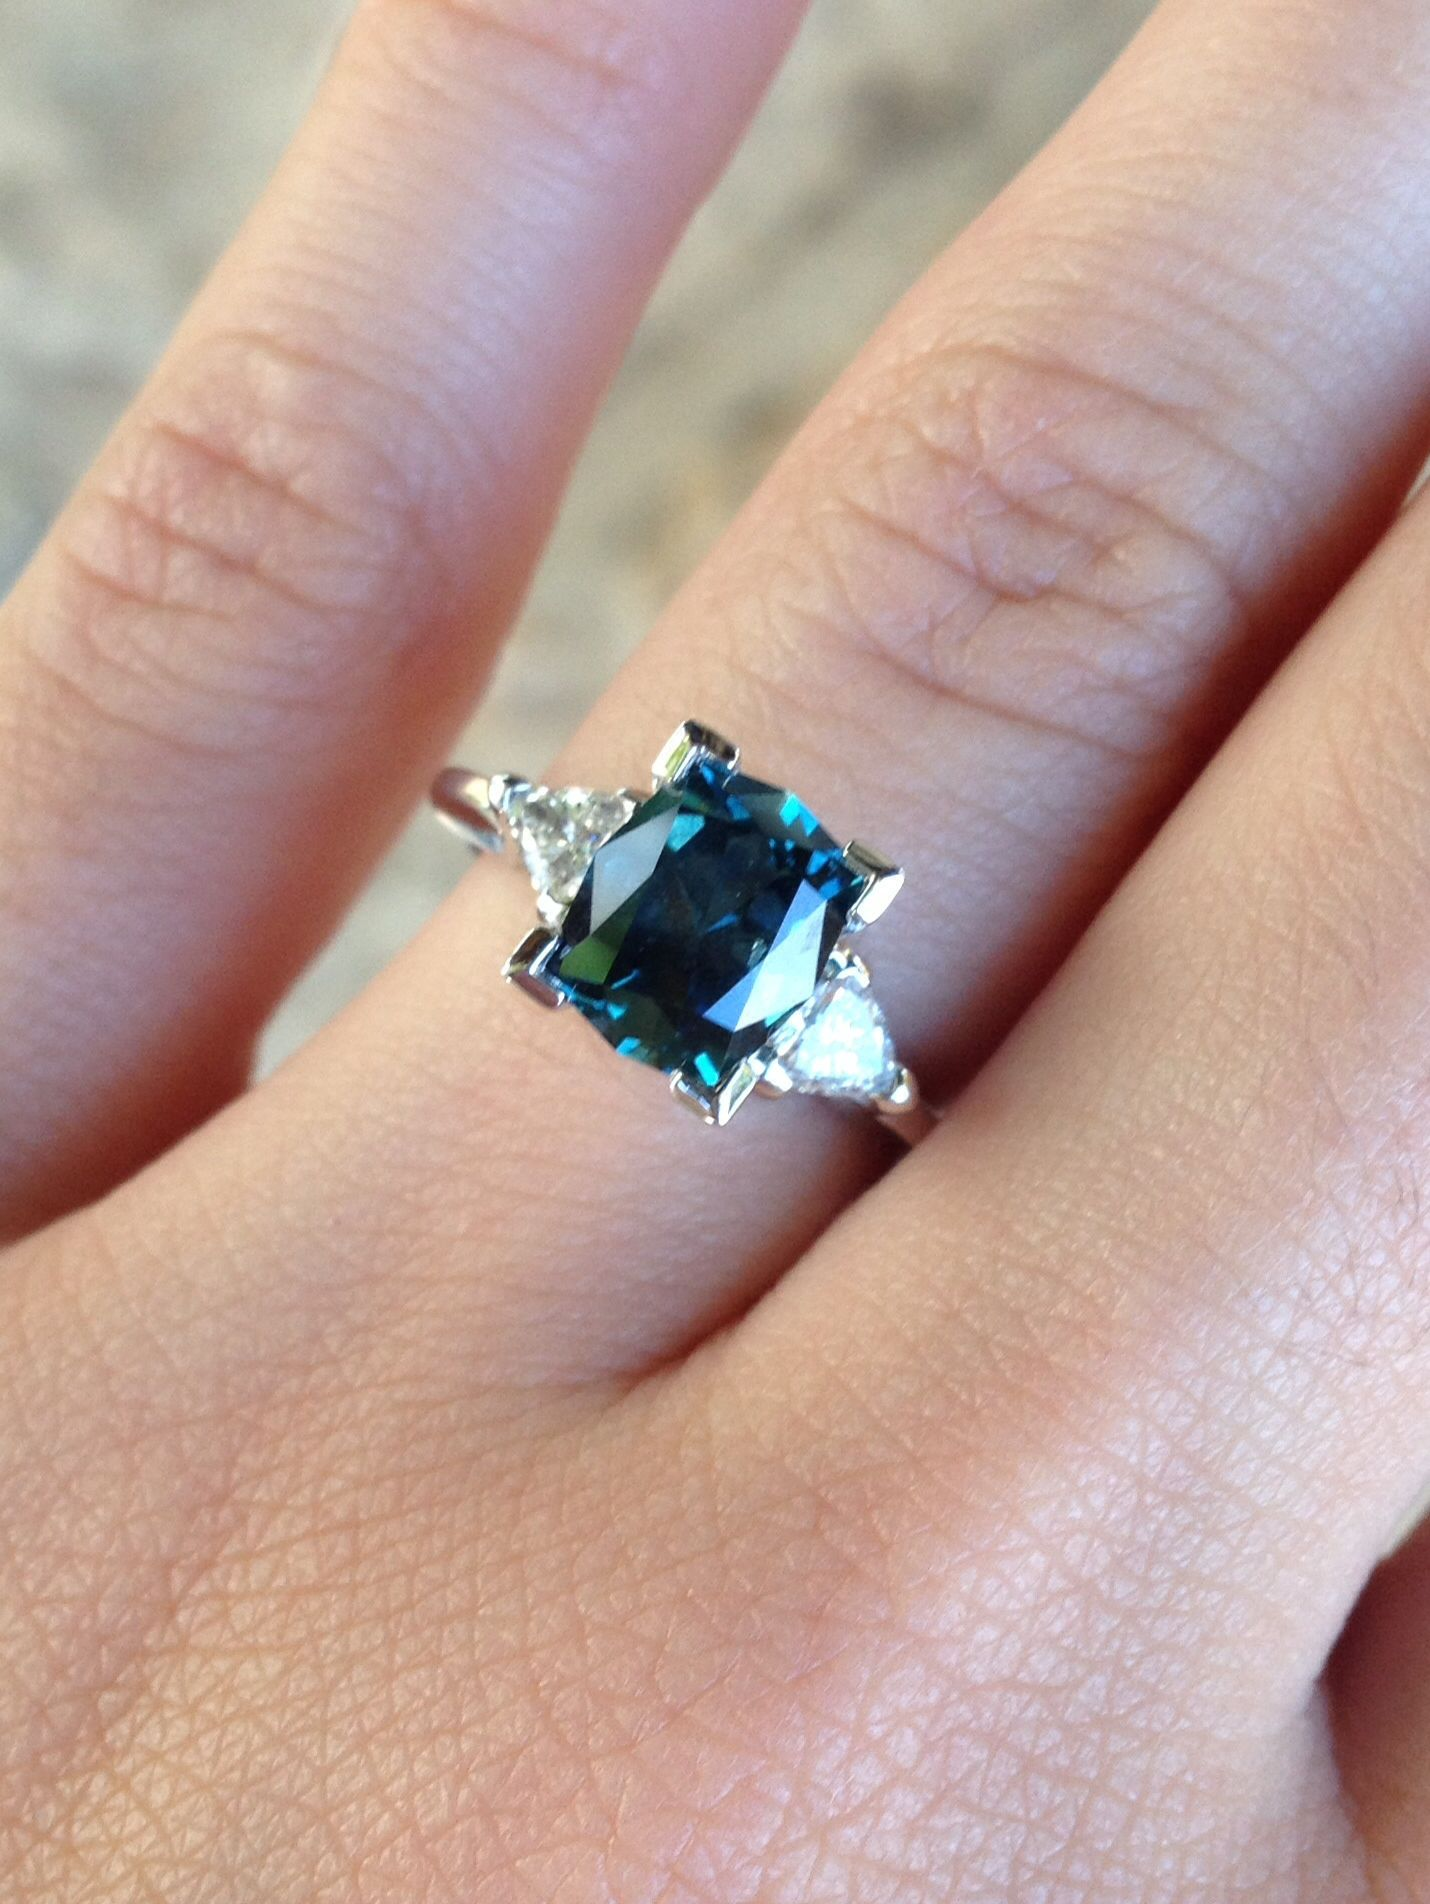 Pin By Alexis Cabanas On Rings Teal Engagement Ring